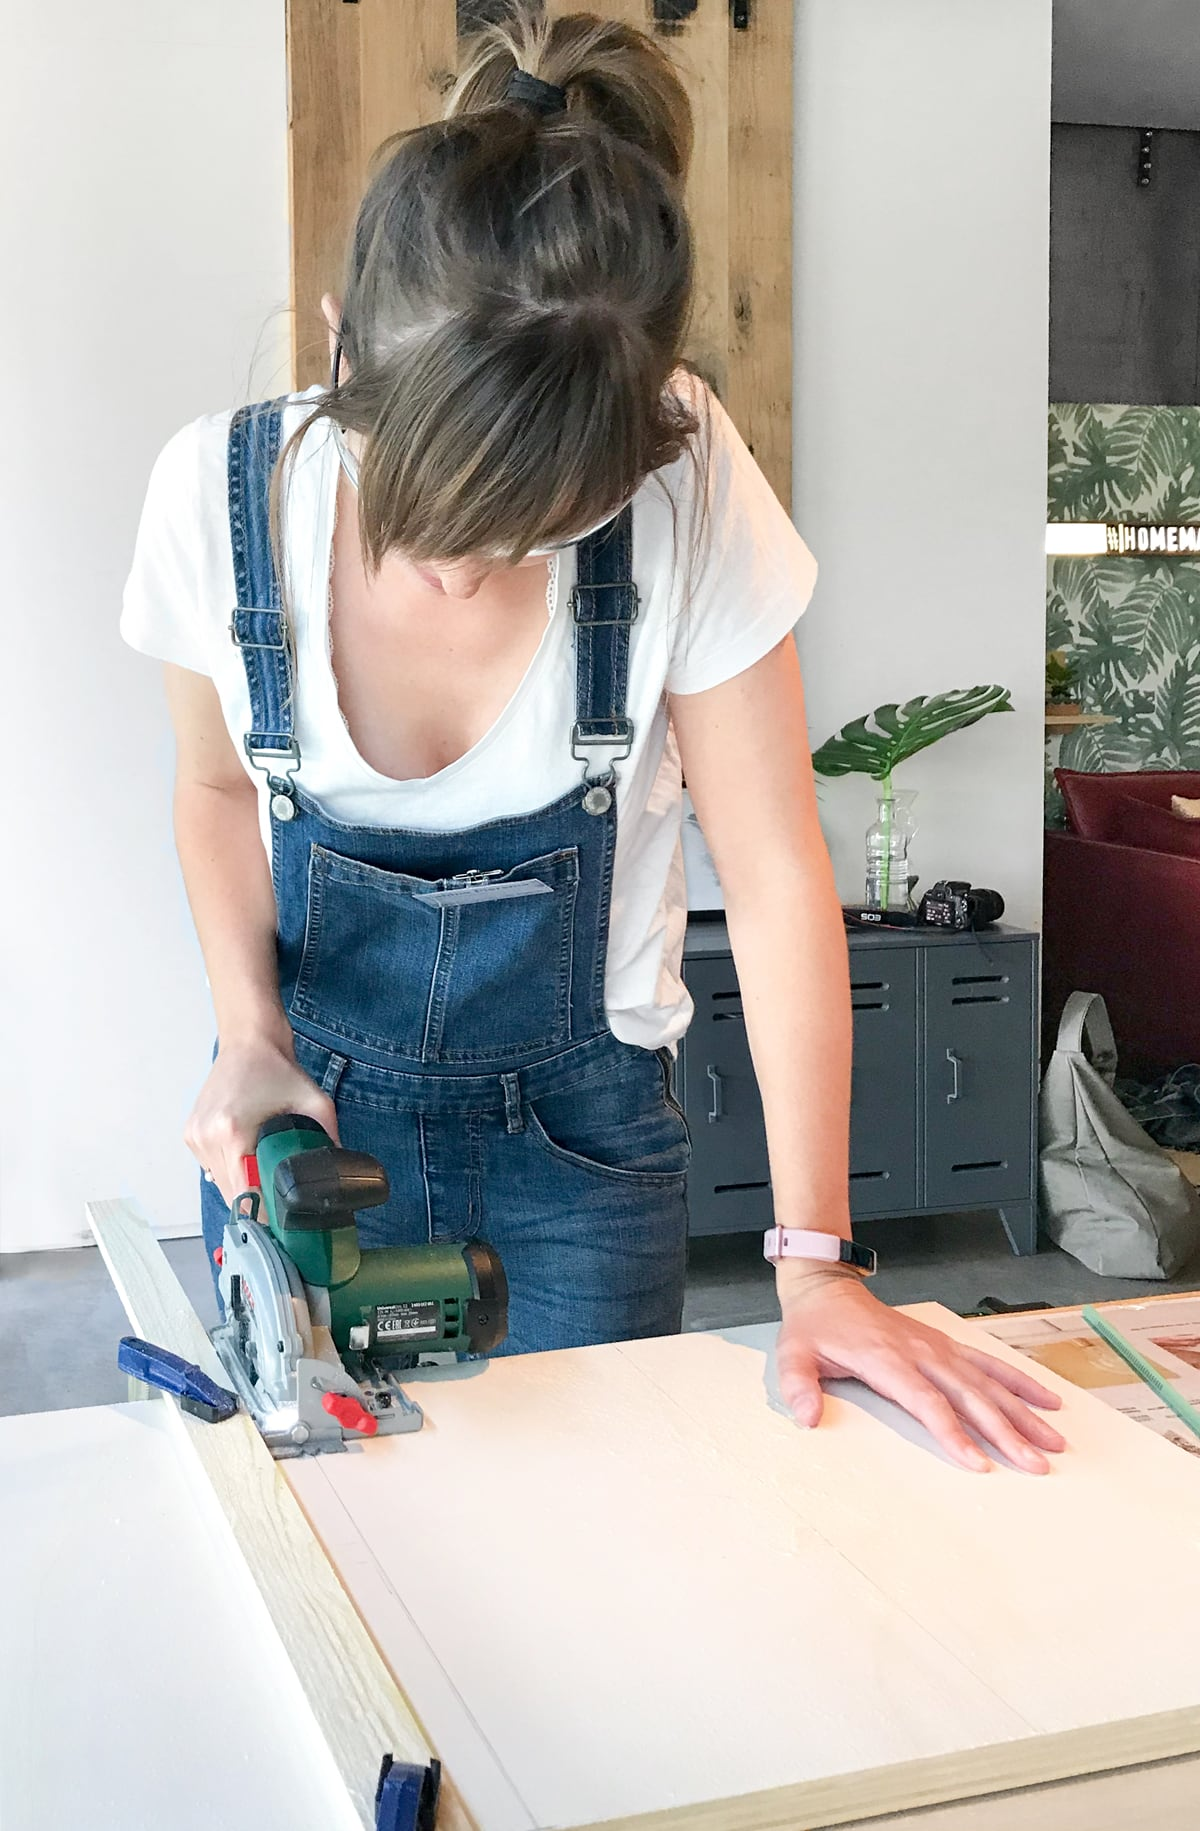 Bosch DIY workshop - Tanja van Hoogdalem